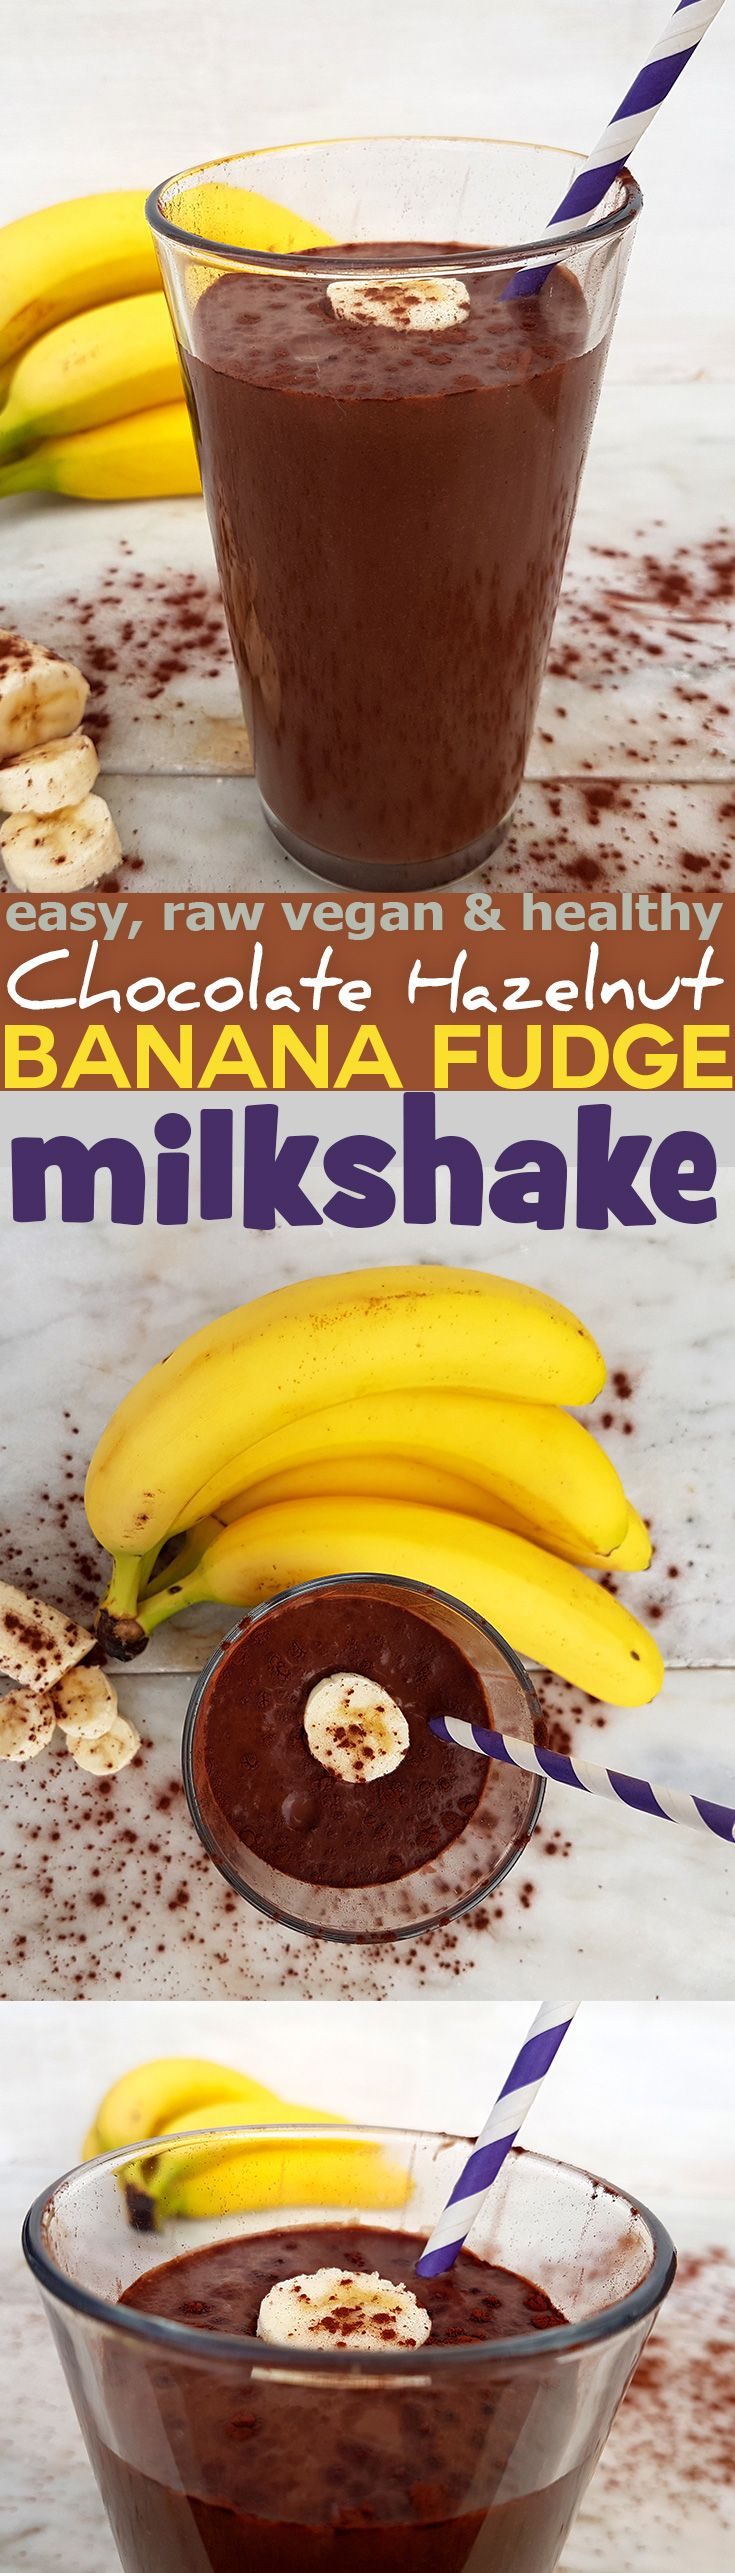 Quick and easy recipe for raw dairy-free Chocolate Hazelnut Banana Fudge Milkshake. Vegan, dairy free, gluten free and healthy. via @nestandglow